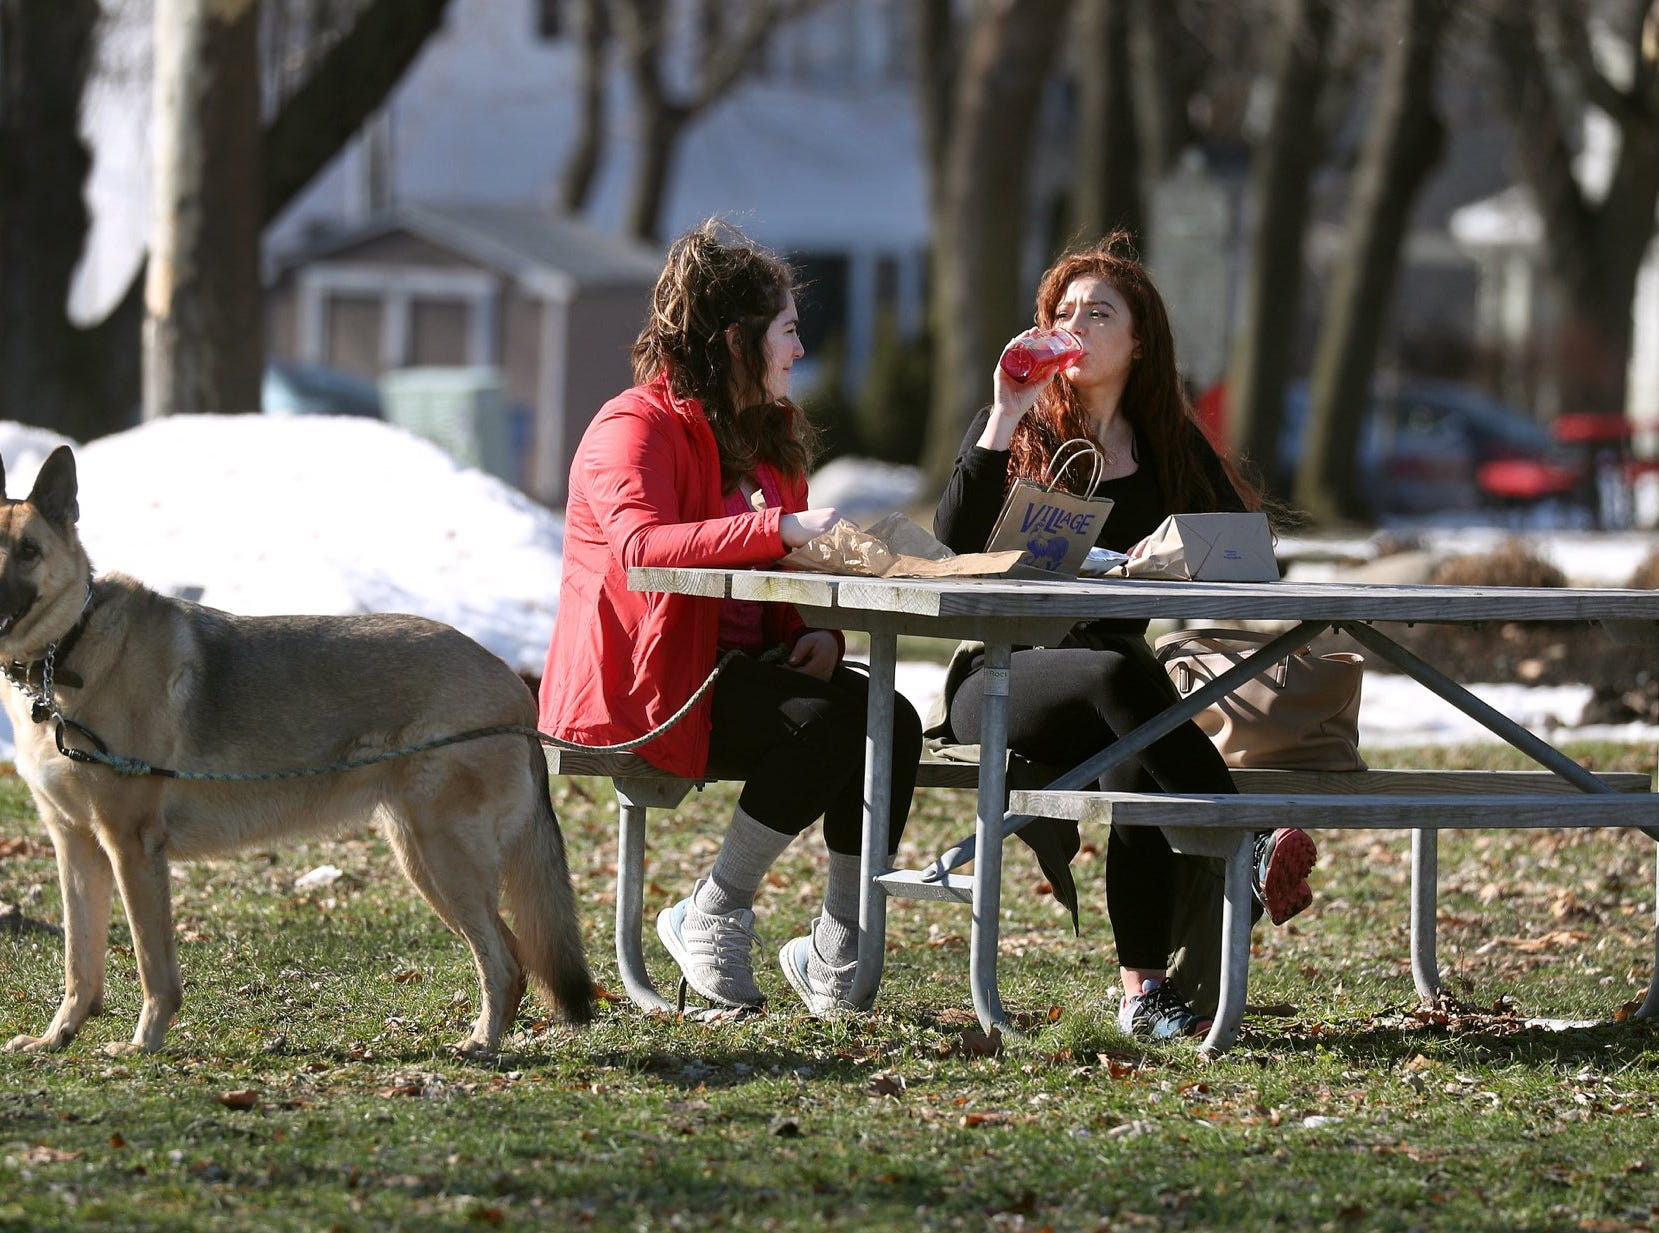 Victoria Cenzi and her dog Ellie join Carly Vittozzi for an outdoor lunch in Cobbs Hill Park Monday. The Rochester had record-setting warmth as temperatures could rise into the low 60's. 